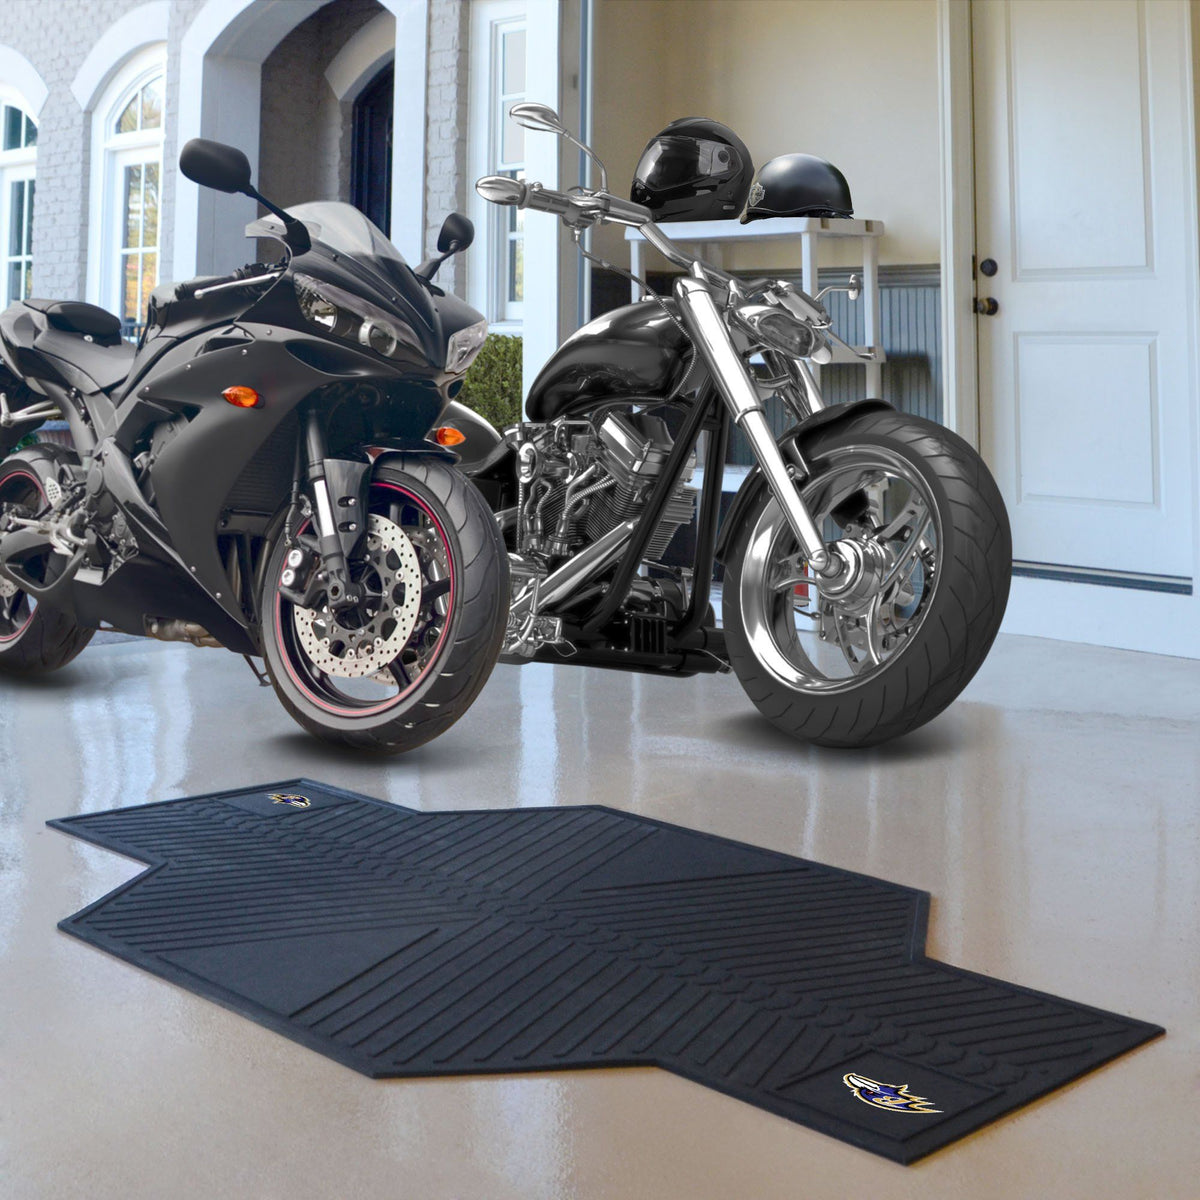 "NFL - Motorcycle Mat, 82.5"" x 42"" NFL Mats, Motorcycle Accessory, Motorcycle Mat, NFL, Auto Fan Mats Baltimore Ravens"